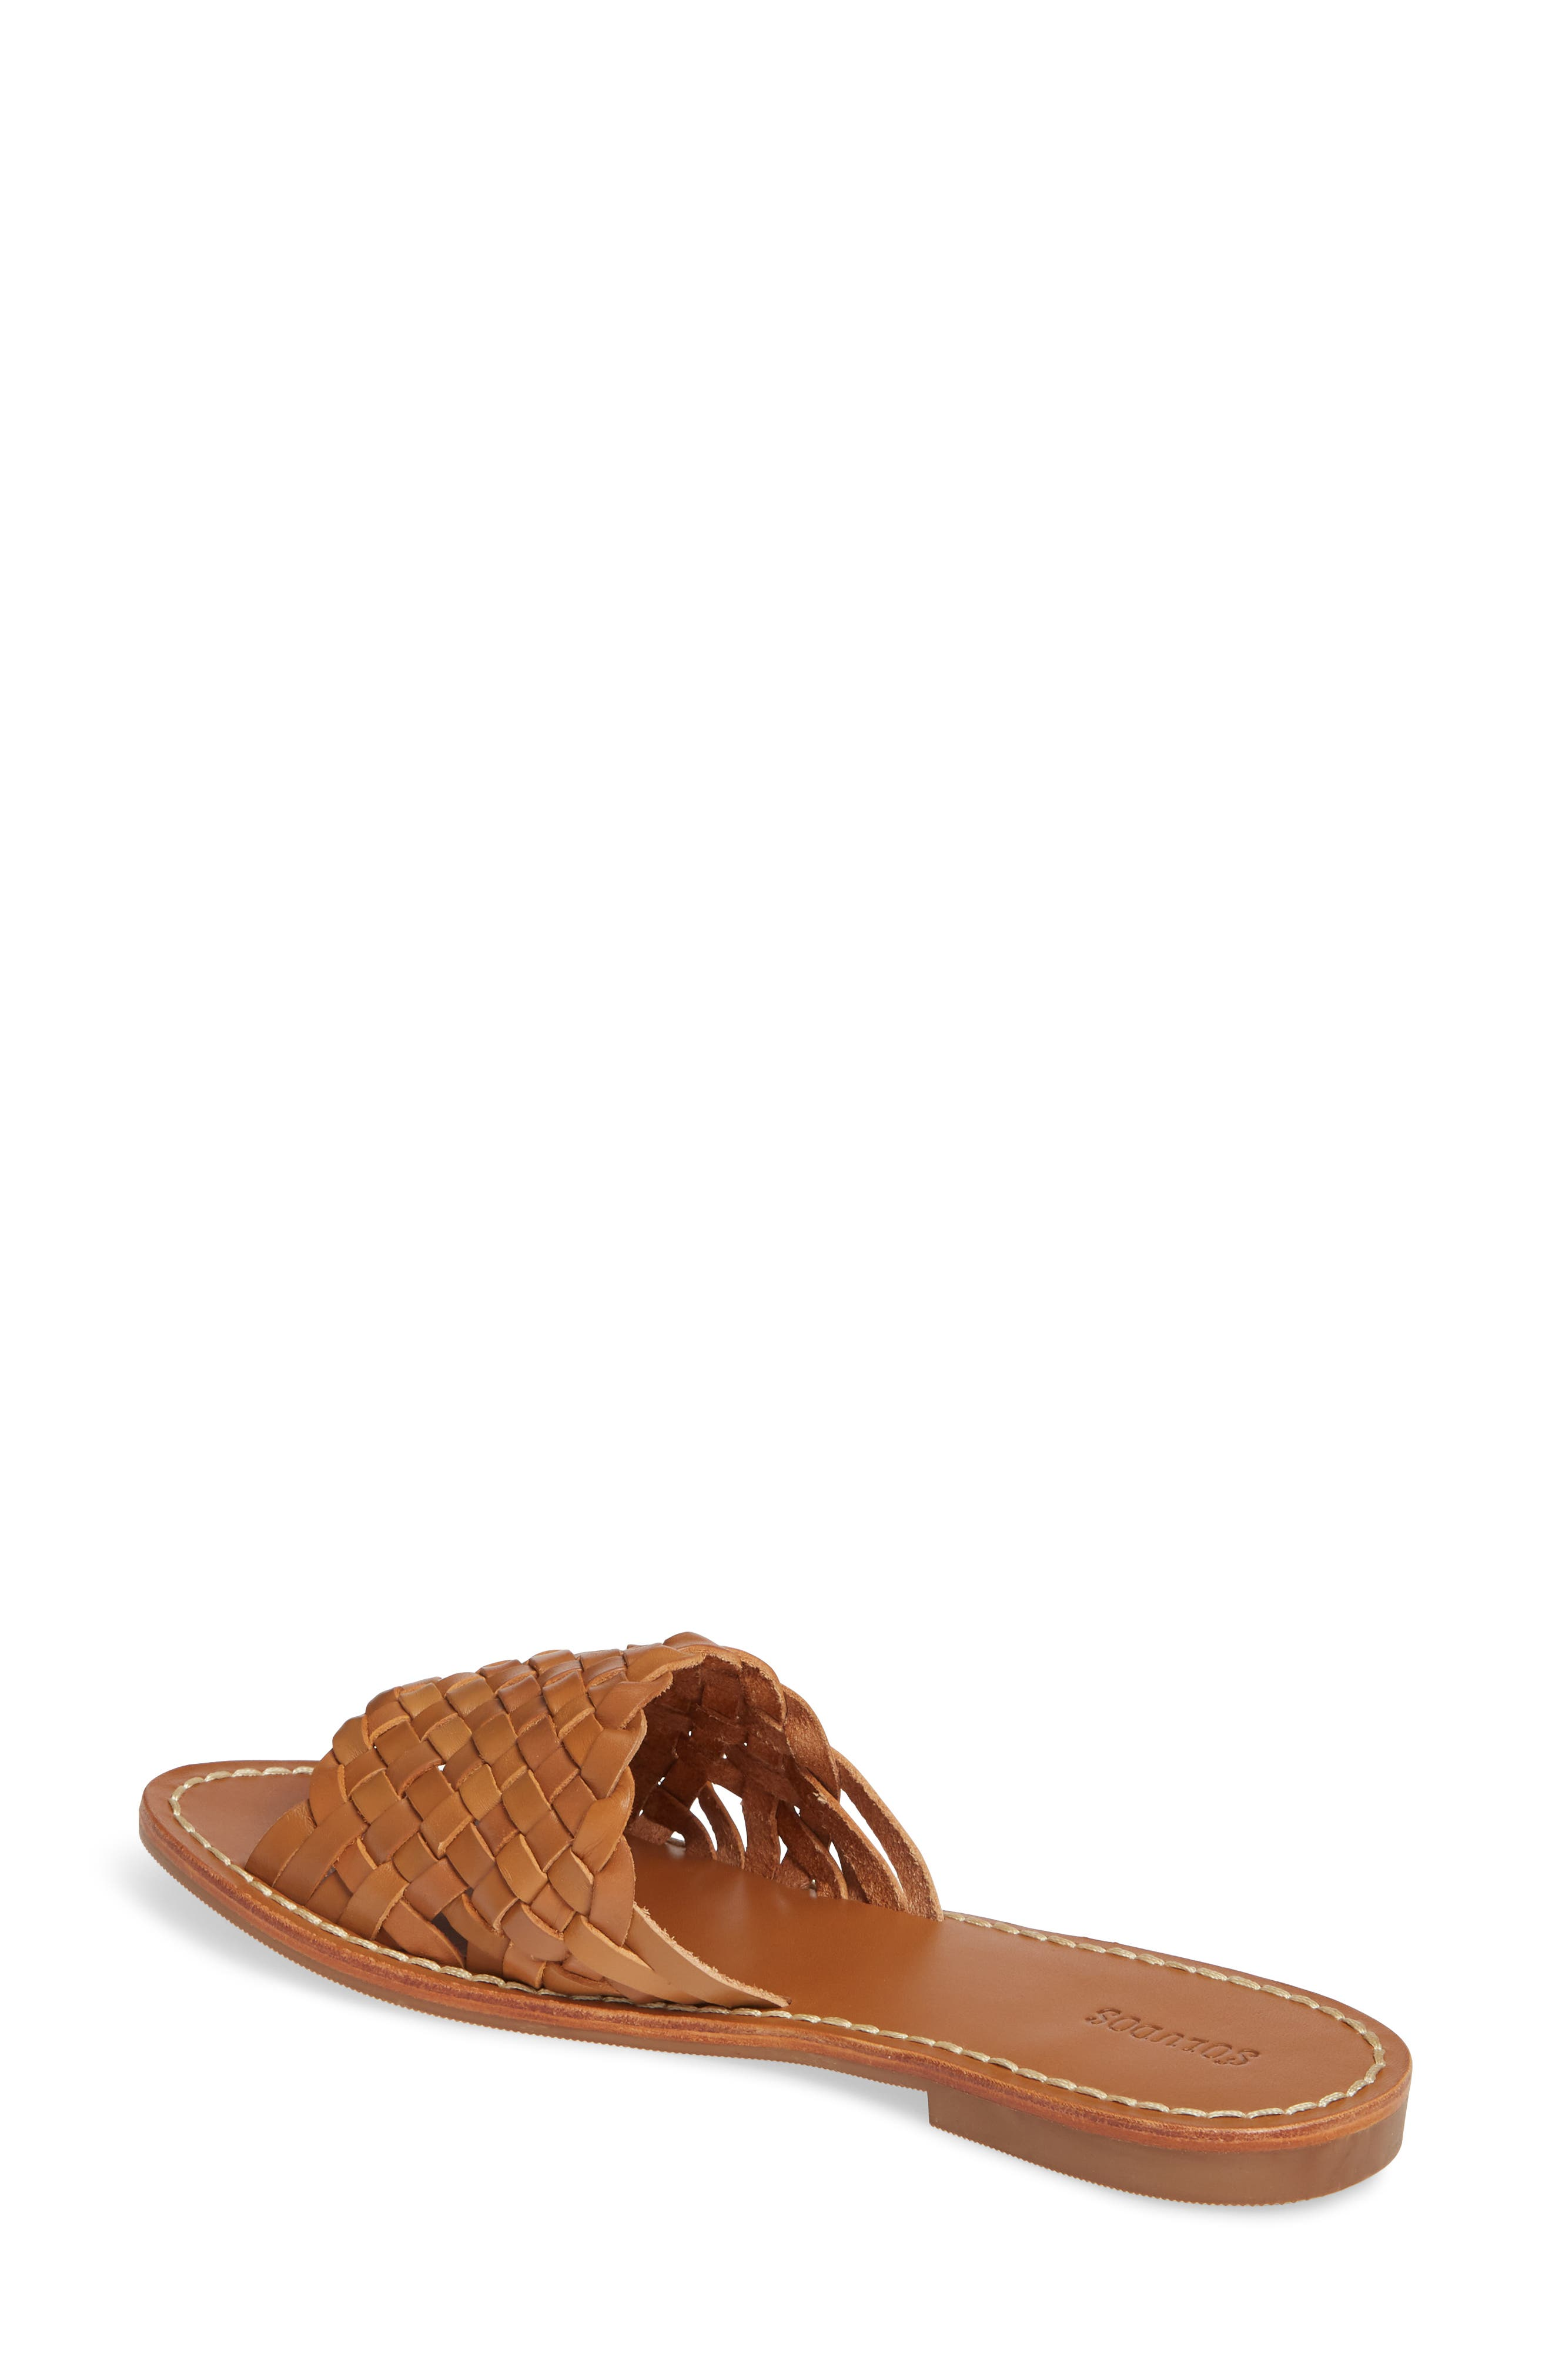 321a7fbdb Women s Soludos Mules   Slides